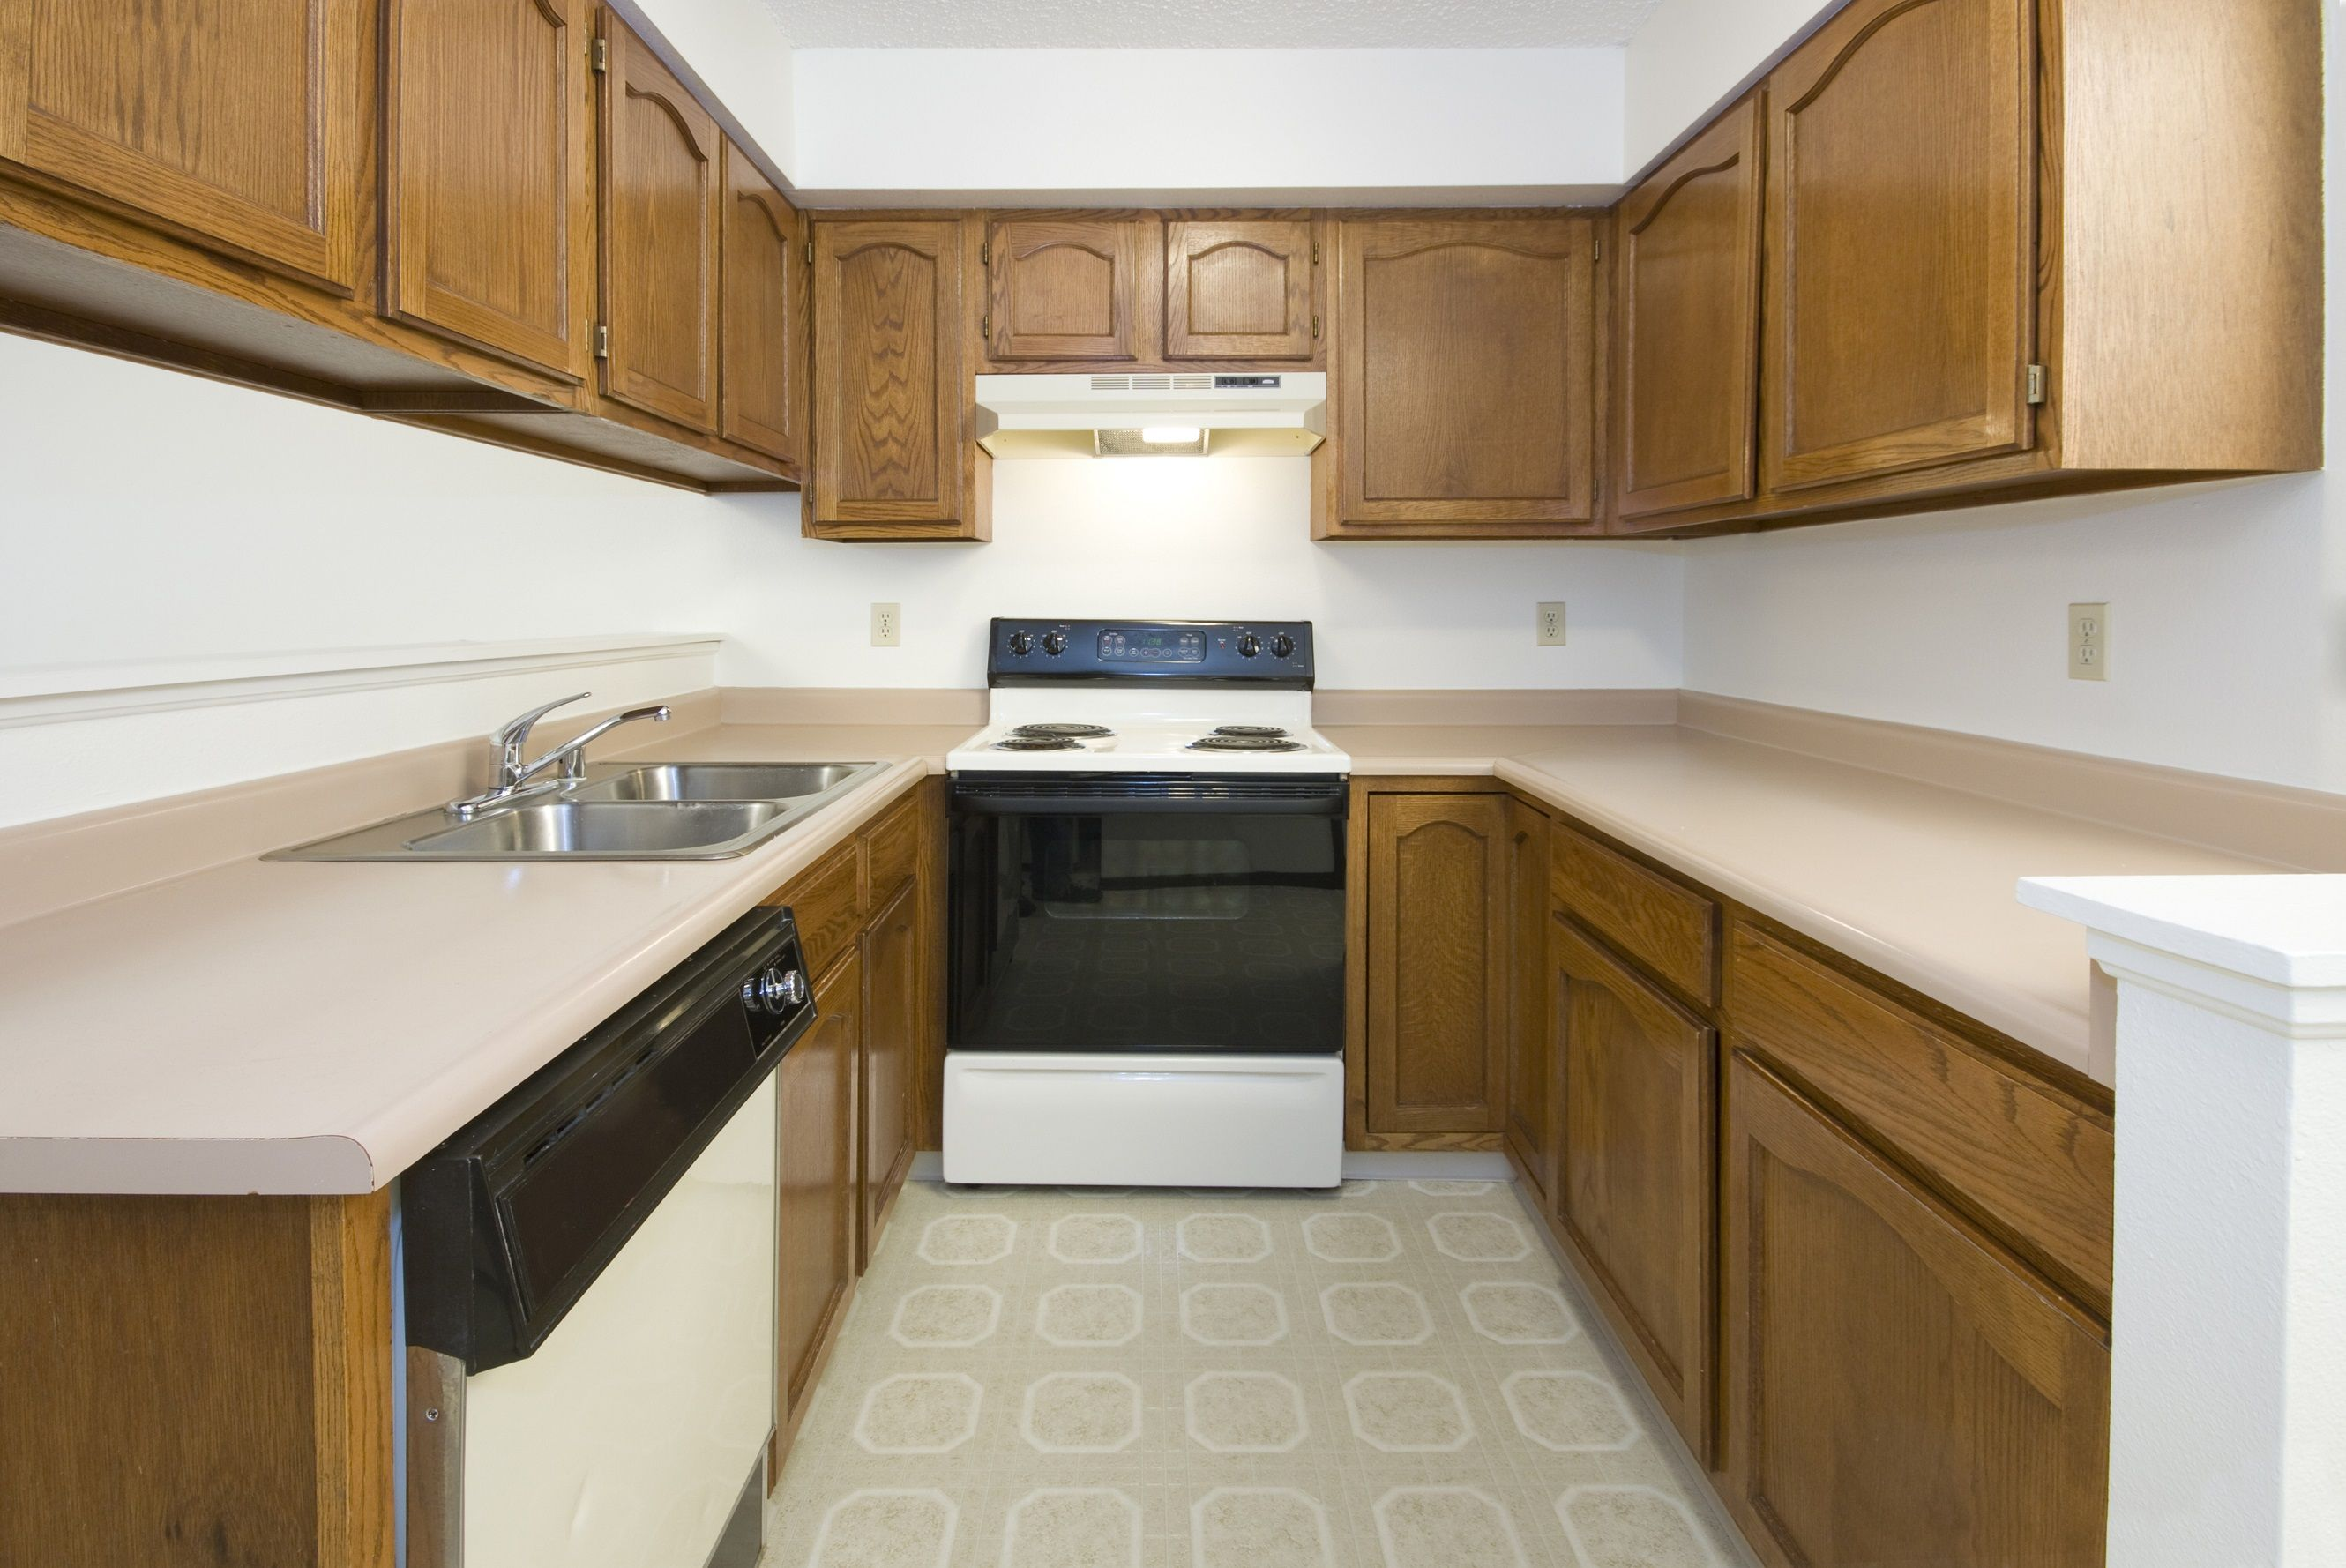 Old, dated kitchen with wood cabinets, laminate counters and old appliances